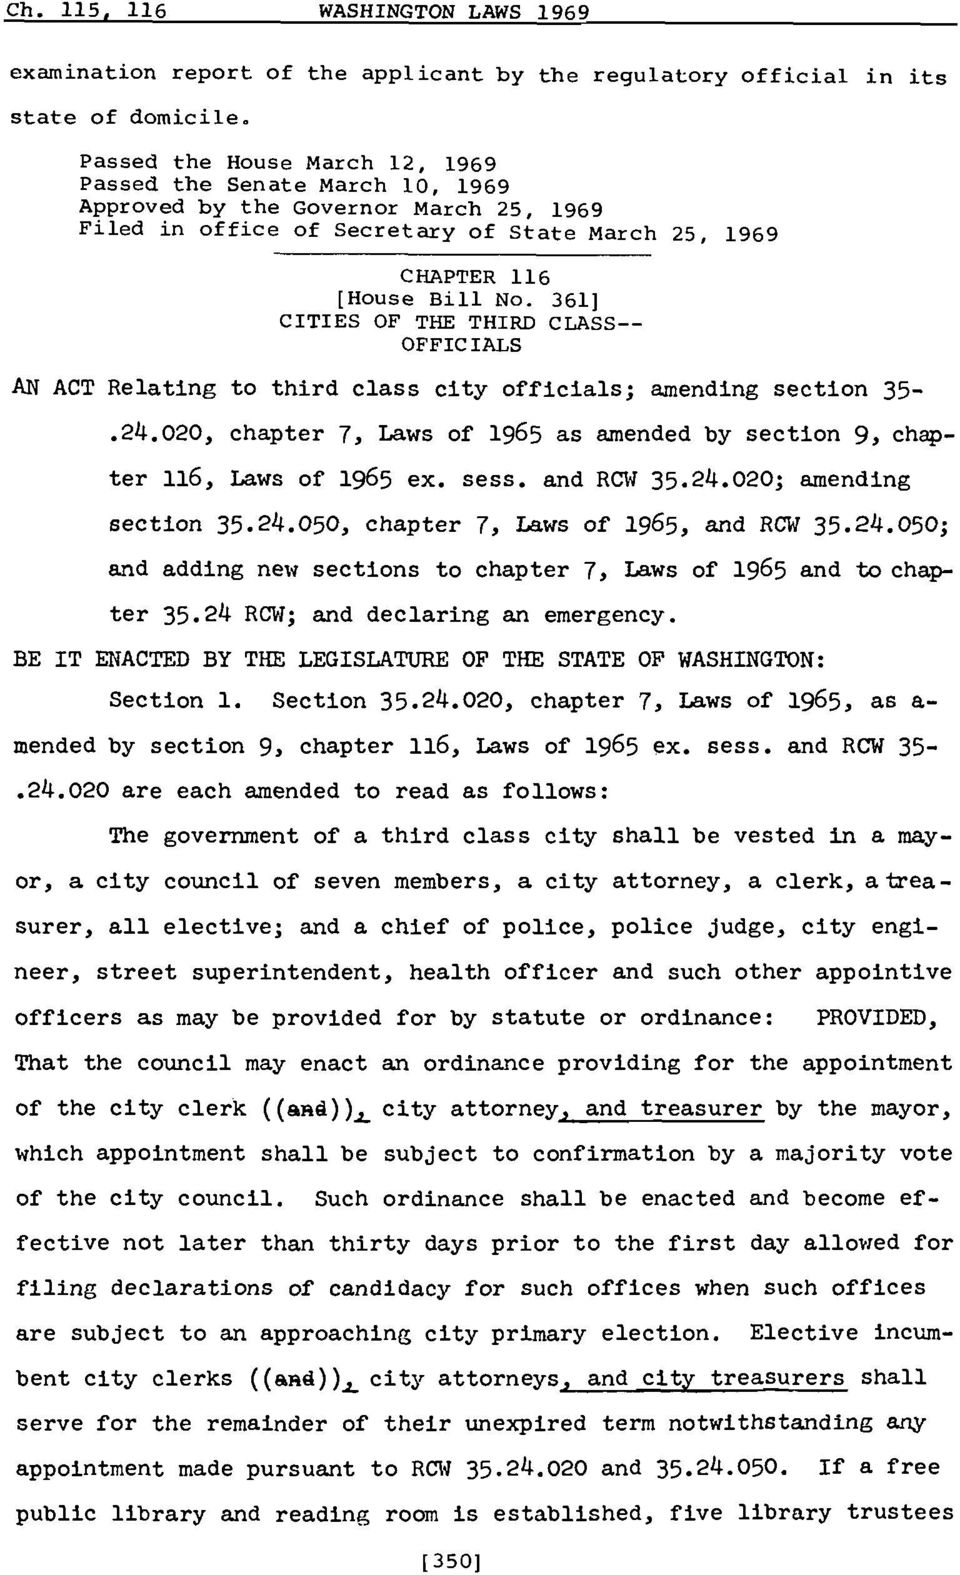 361] CITIES OF THE THIRD CLASS- OFF IC IALS AN ACT Relating to third class city officials; amending section 35-.24.020, chapter 7, Laws of 1965 as amended by section 9, chapter 116, Laws of 1965 ex.